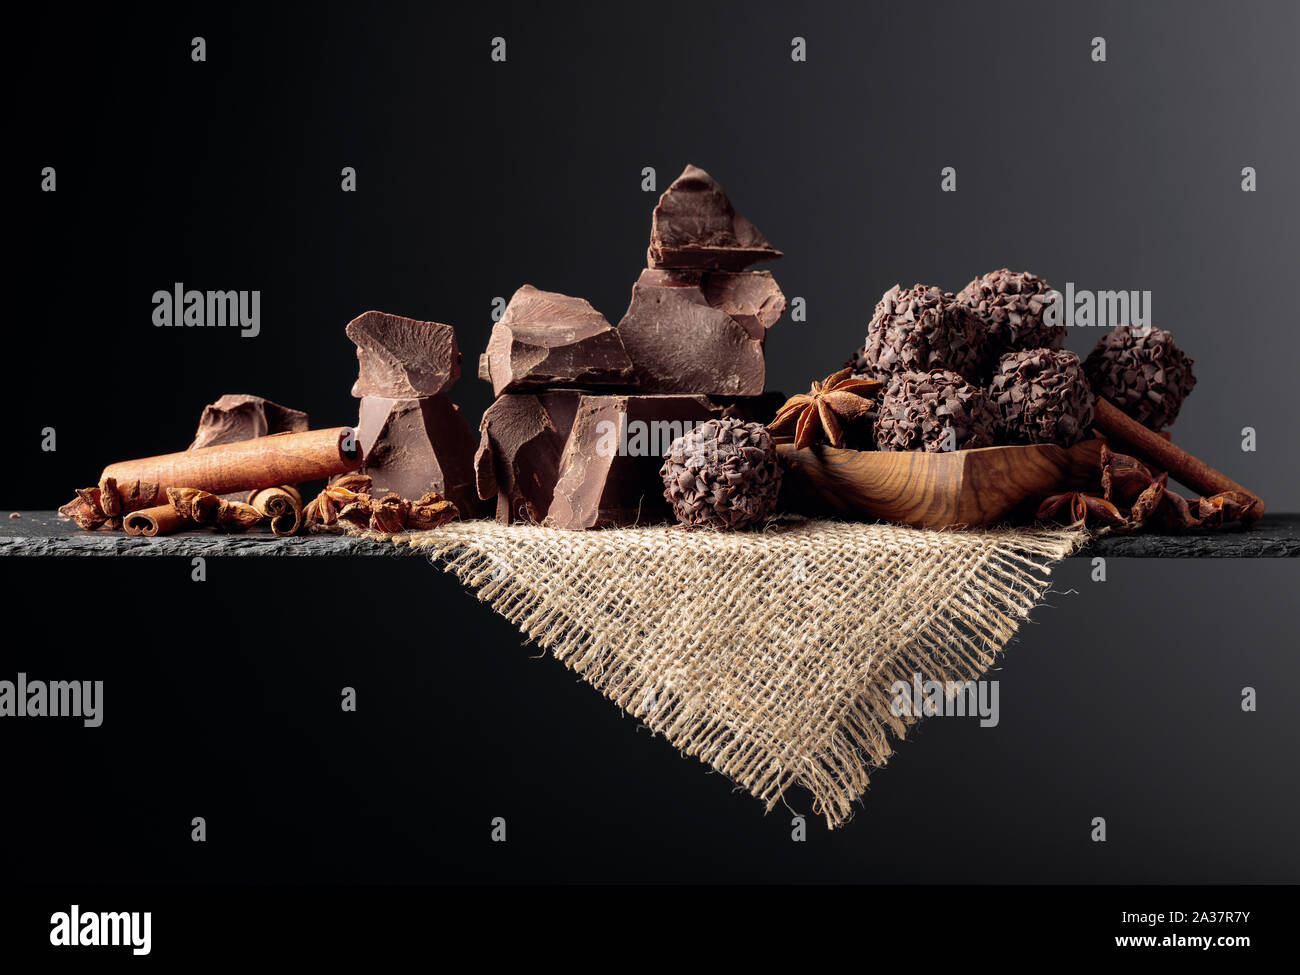 Chocolate truffles with broken pieces of chocolate and spices. Chocolate, cinnamon sticks and anise on a dark background. Copy space. Stock Photo